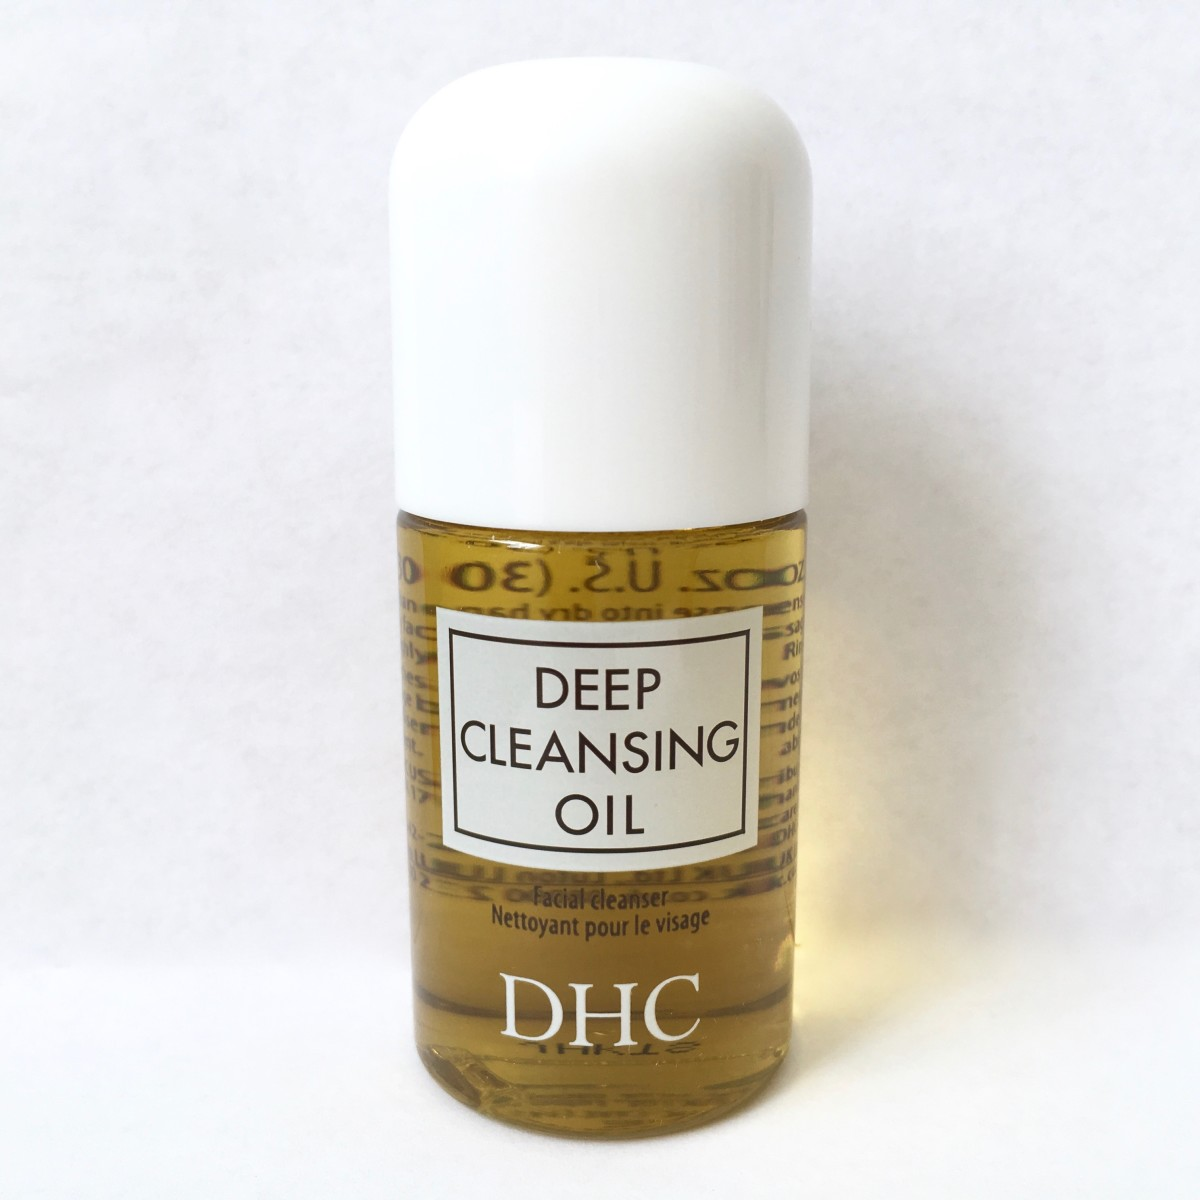 DHC Deep Cleansing Oil - The size shown is the Travel Size bottle.